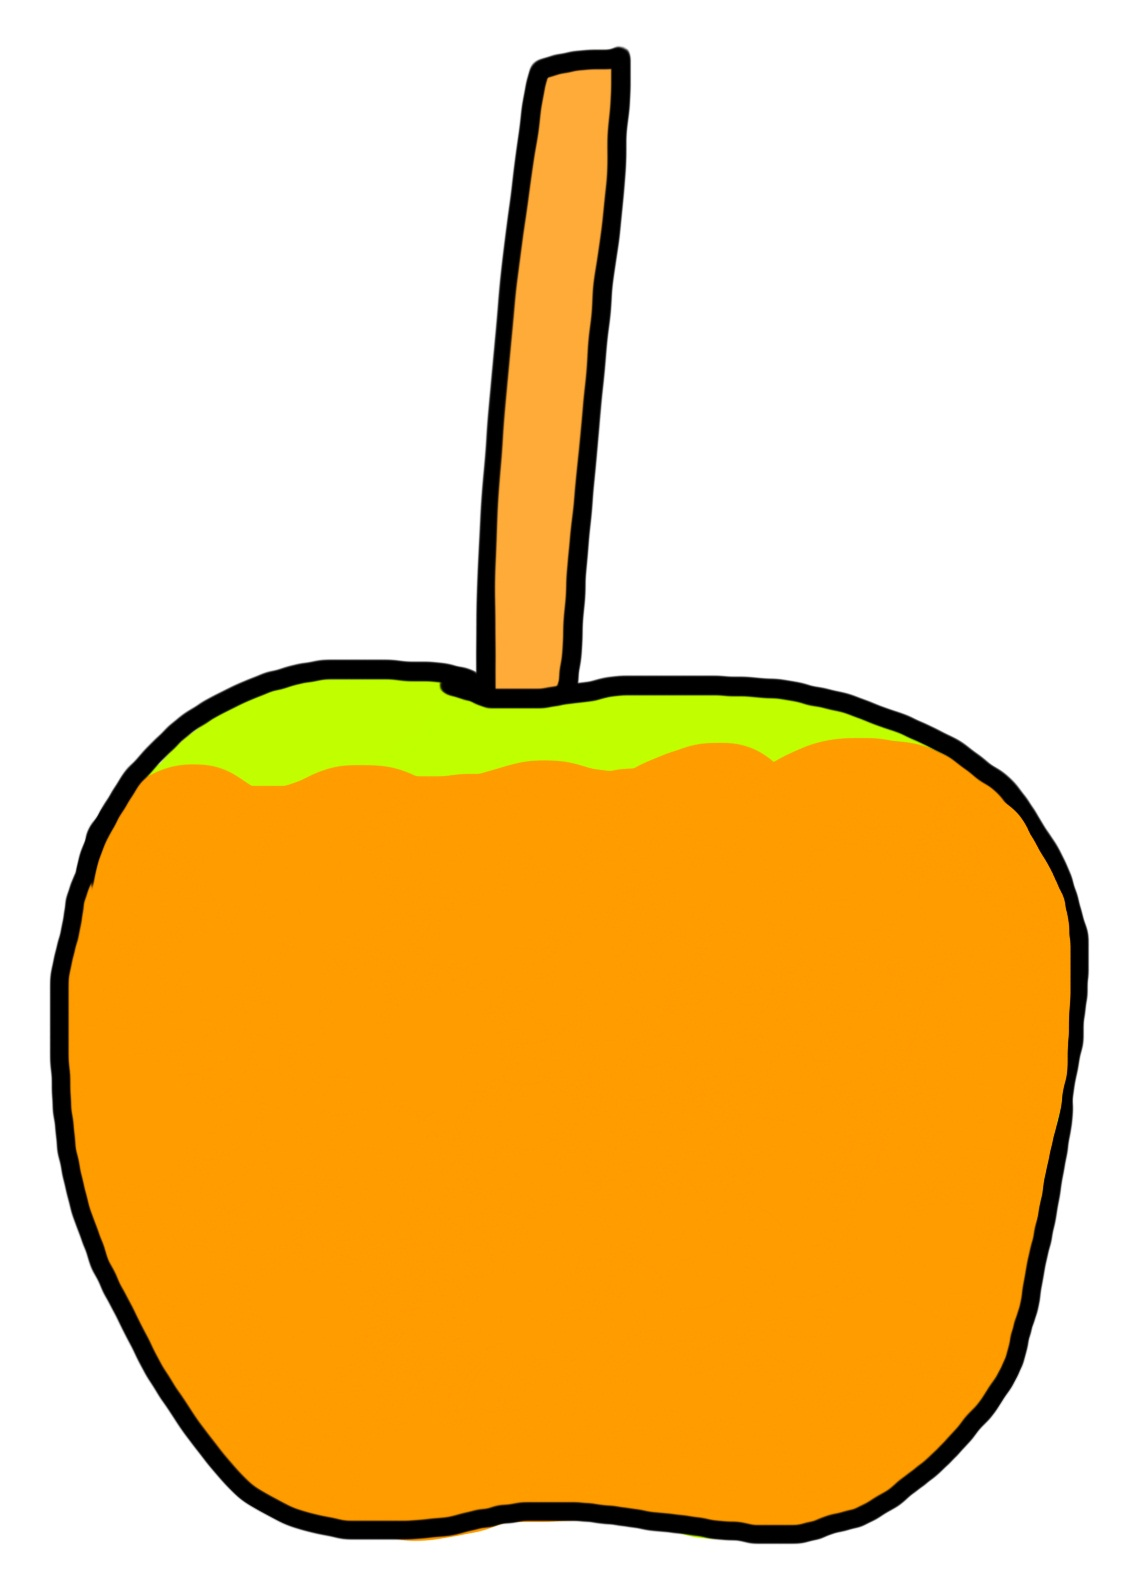 Candy Apple Clip Art - Cliparts.co